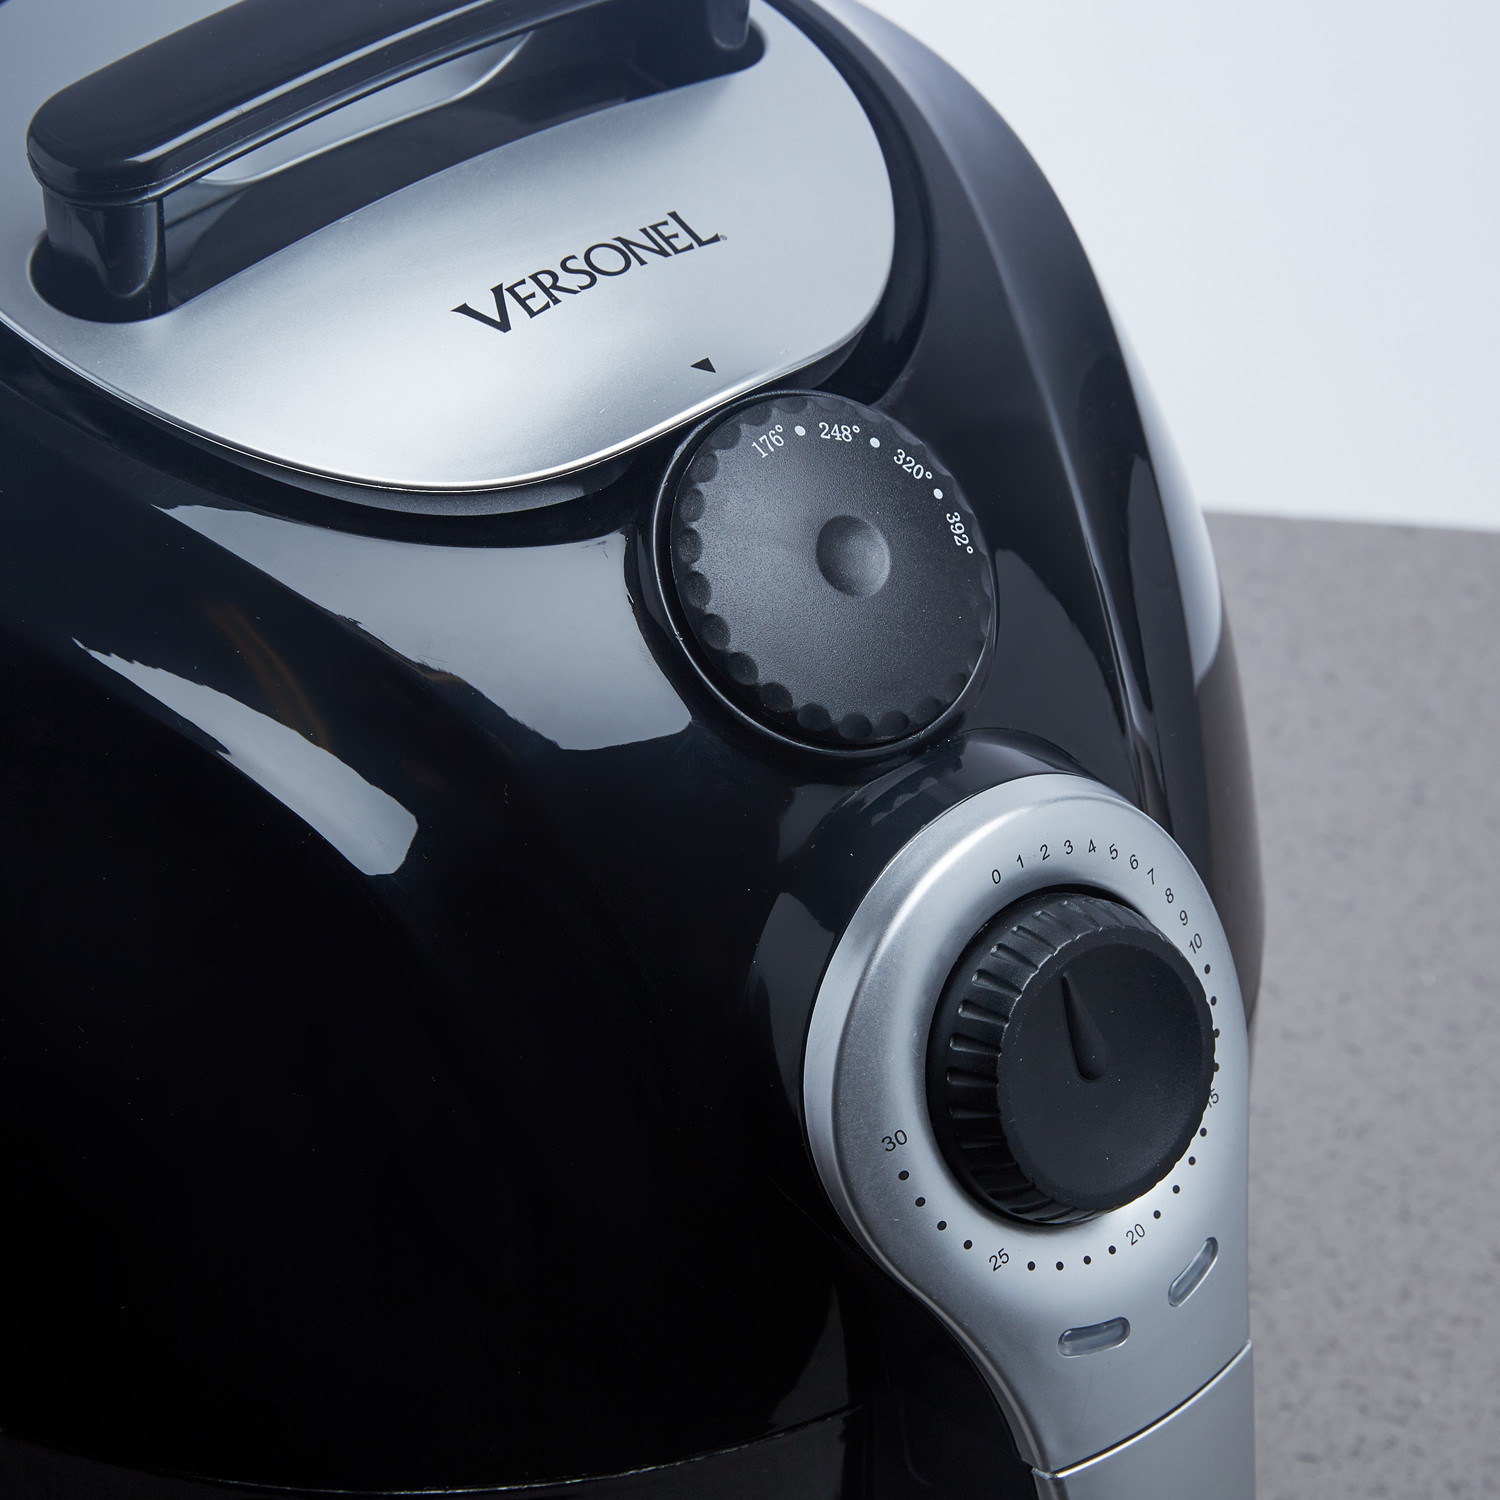 Vslaf130 oil free air fryer versonel touch of modern Modern home air fryer